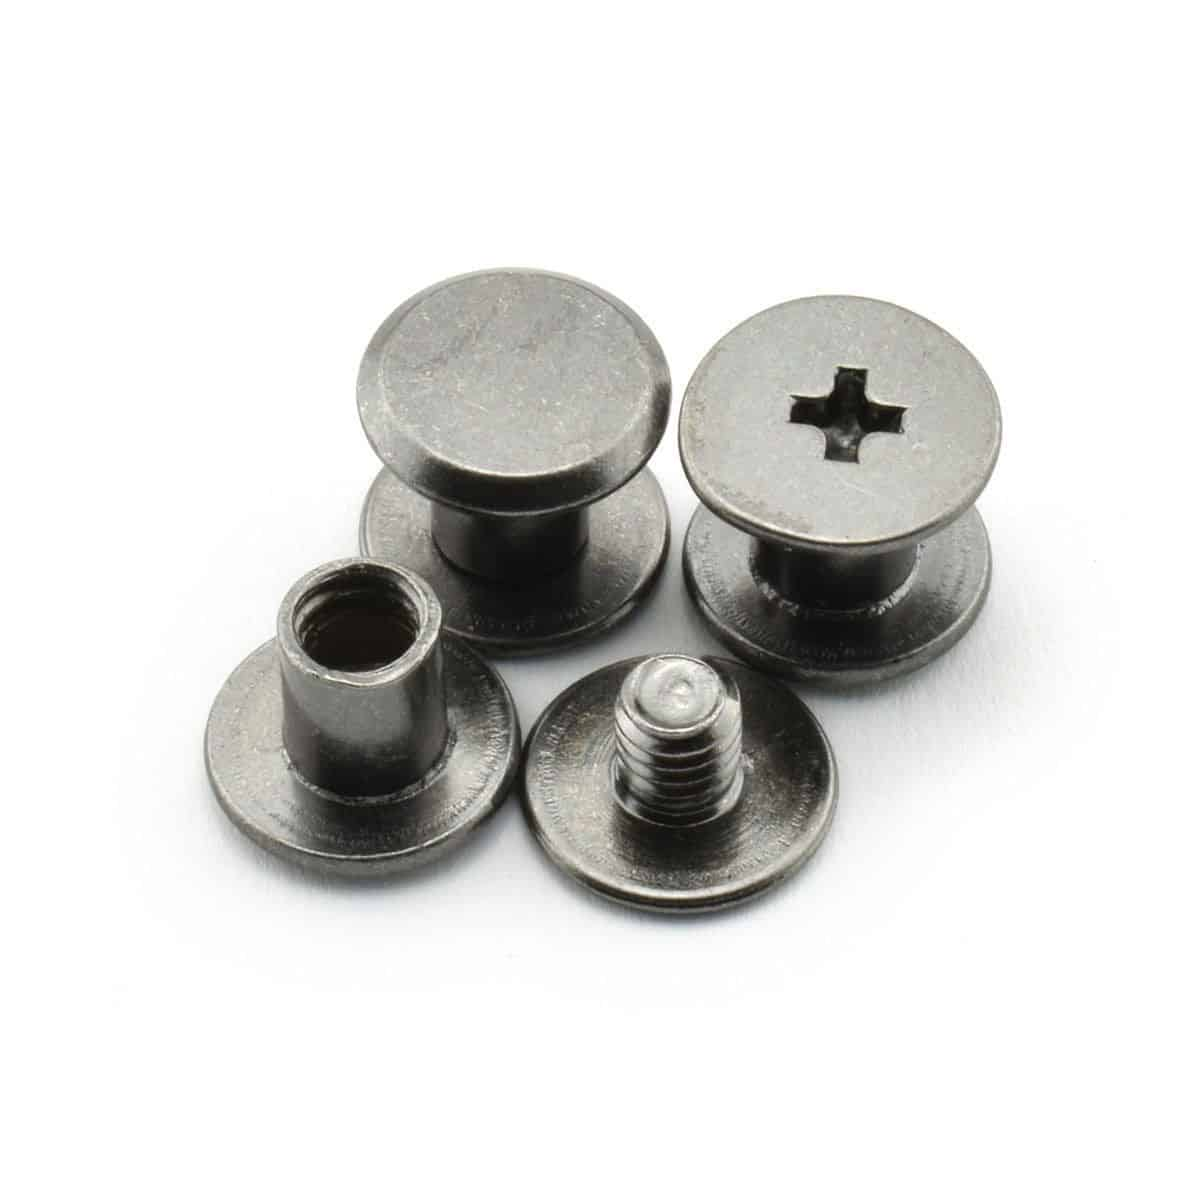 Cross head binding screw with anti-corrosion and anti-rust features.